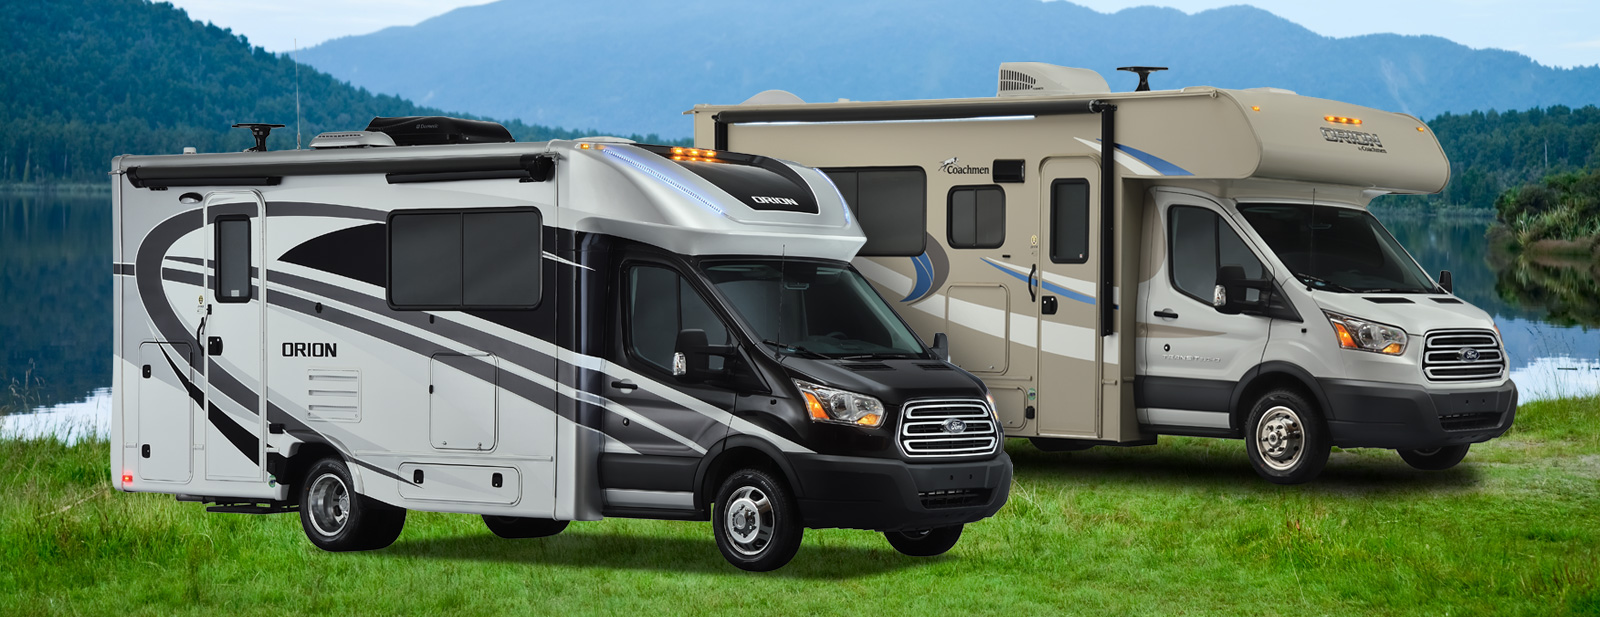 Orion Coachmen Rv Manufacturer Of Travel Trailers Fifth Wheels Home Attwood Trailer Light Circuit Tester Tent Campers Motorhomes